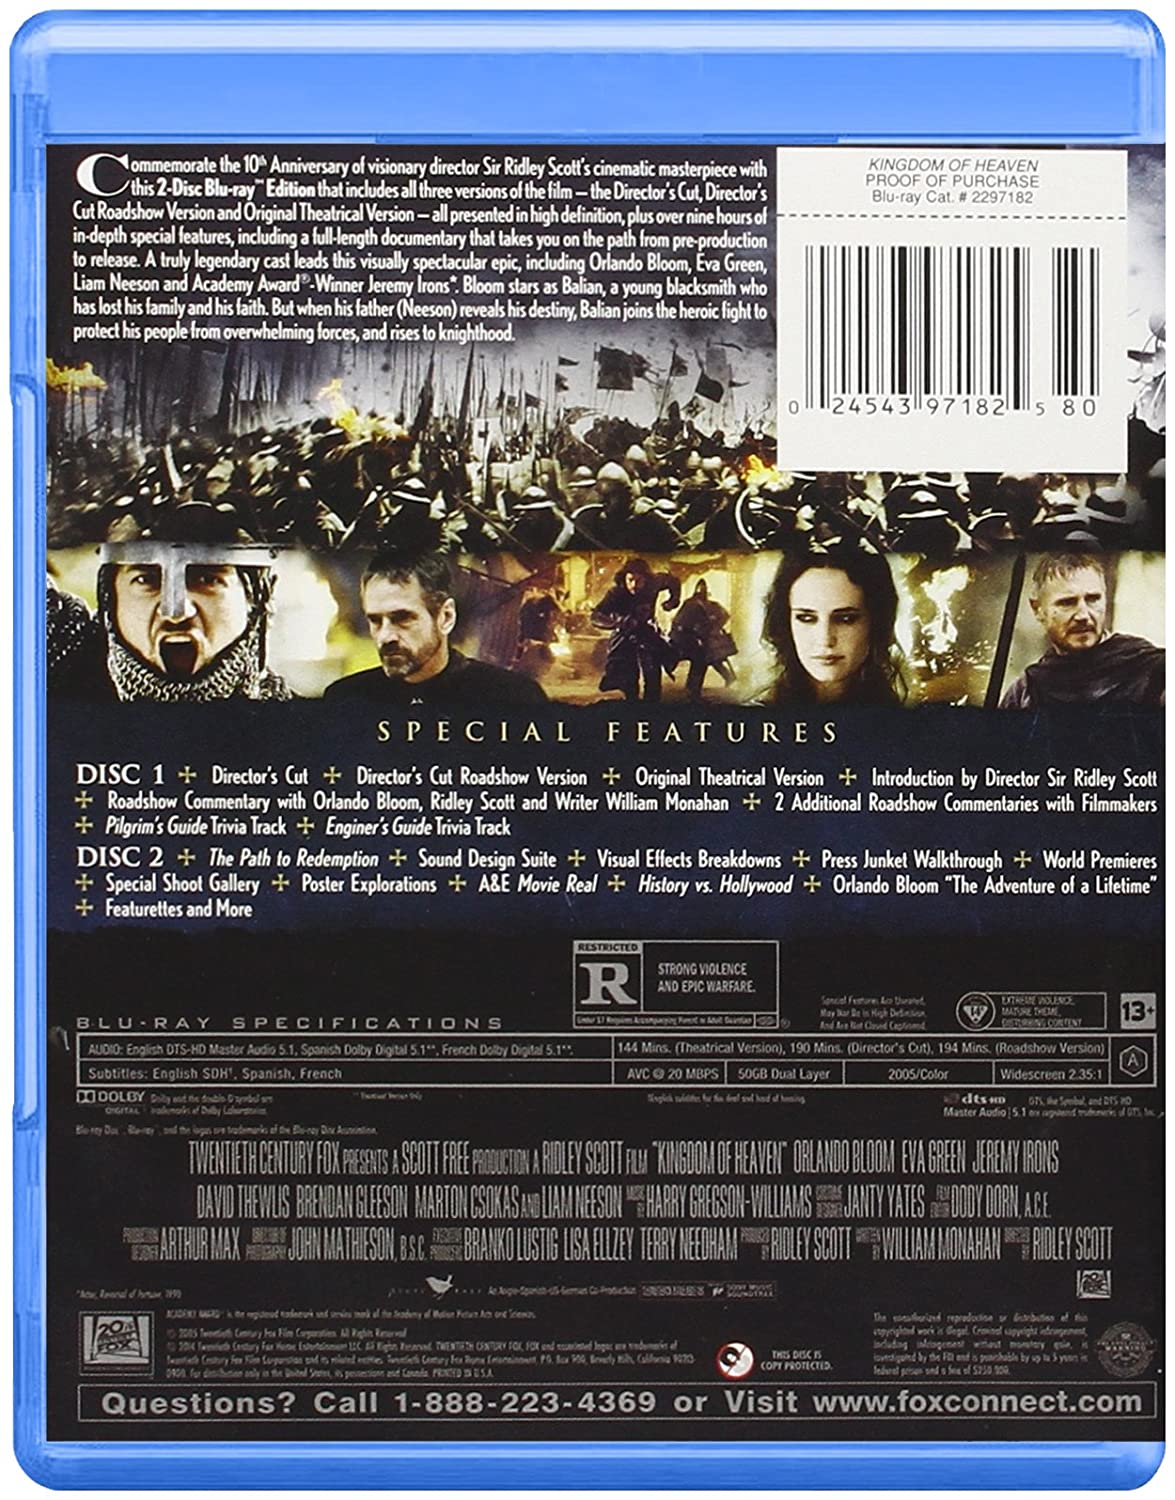 Amazon Kingdom Of Heaven Ultimate Edition Orlando Bloom Eva Green Jeremy Irons David Thewlis Brendan Gleeson Khaled El Nabaoui Peter Cant